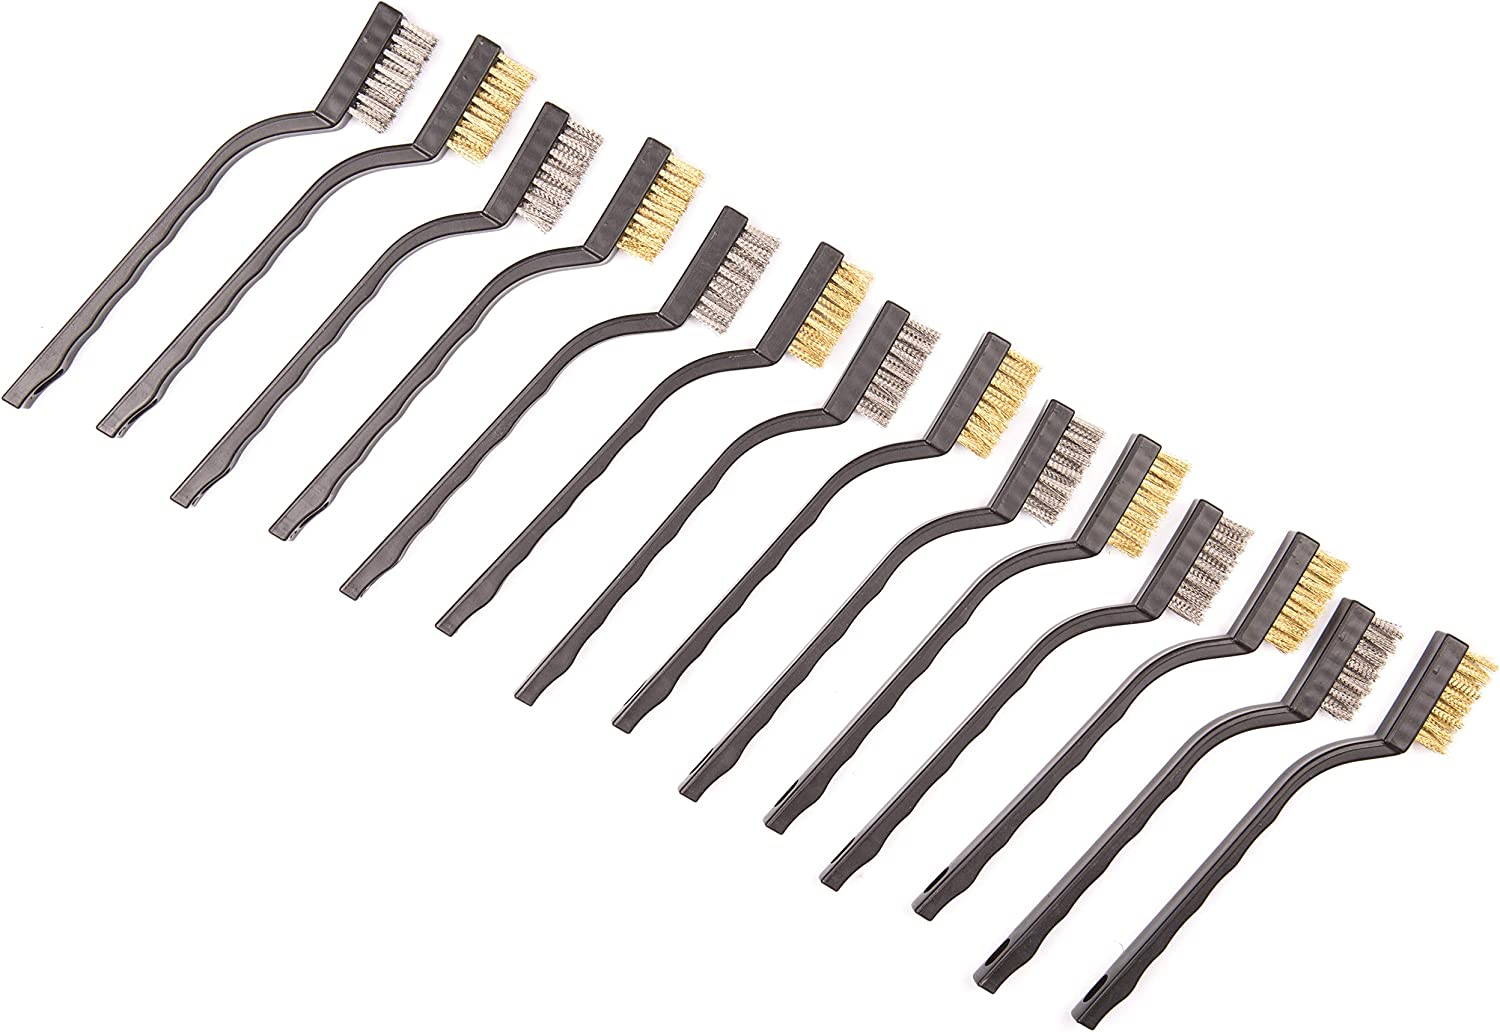 14 Pack Wire Brush Set for Cleaning Welding Slag and Rust, Curved Handle Masonry brush Wire bristle Scratch Brush (Stainless Steel and Brass)